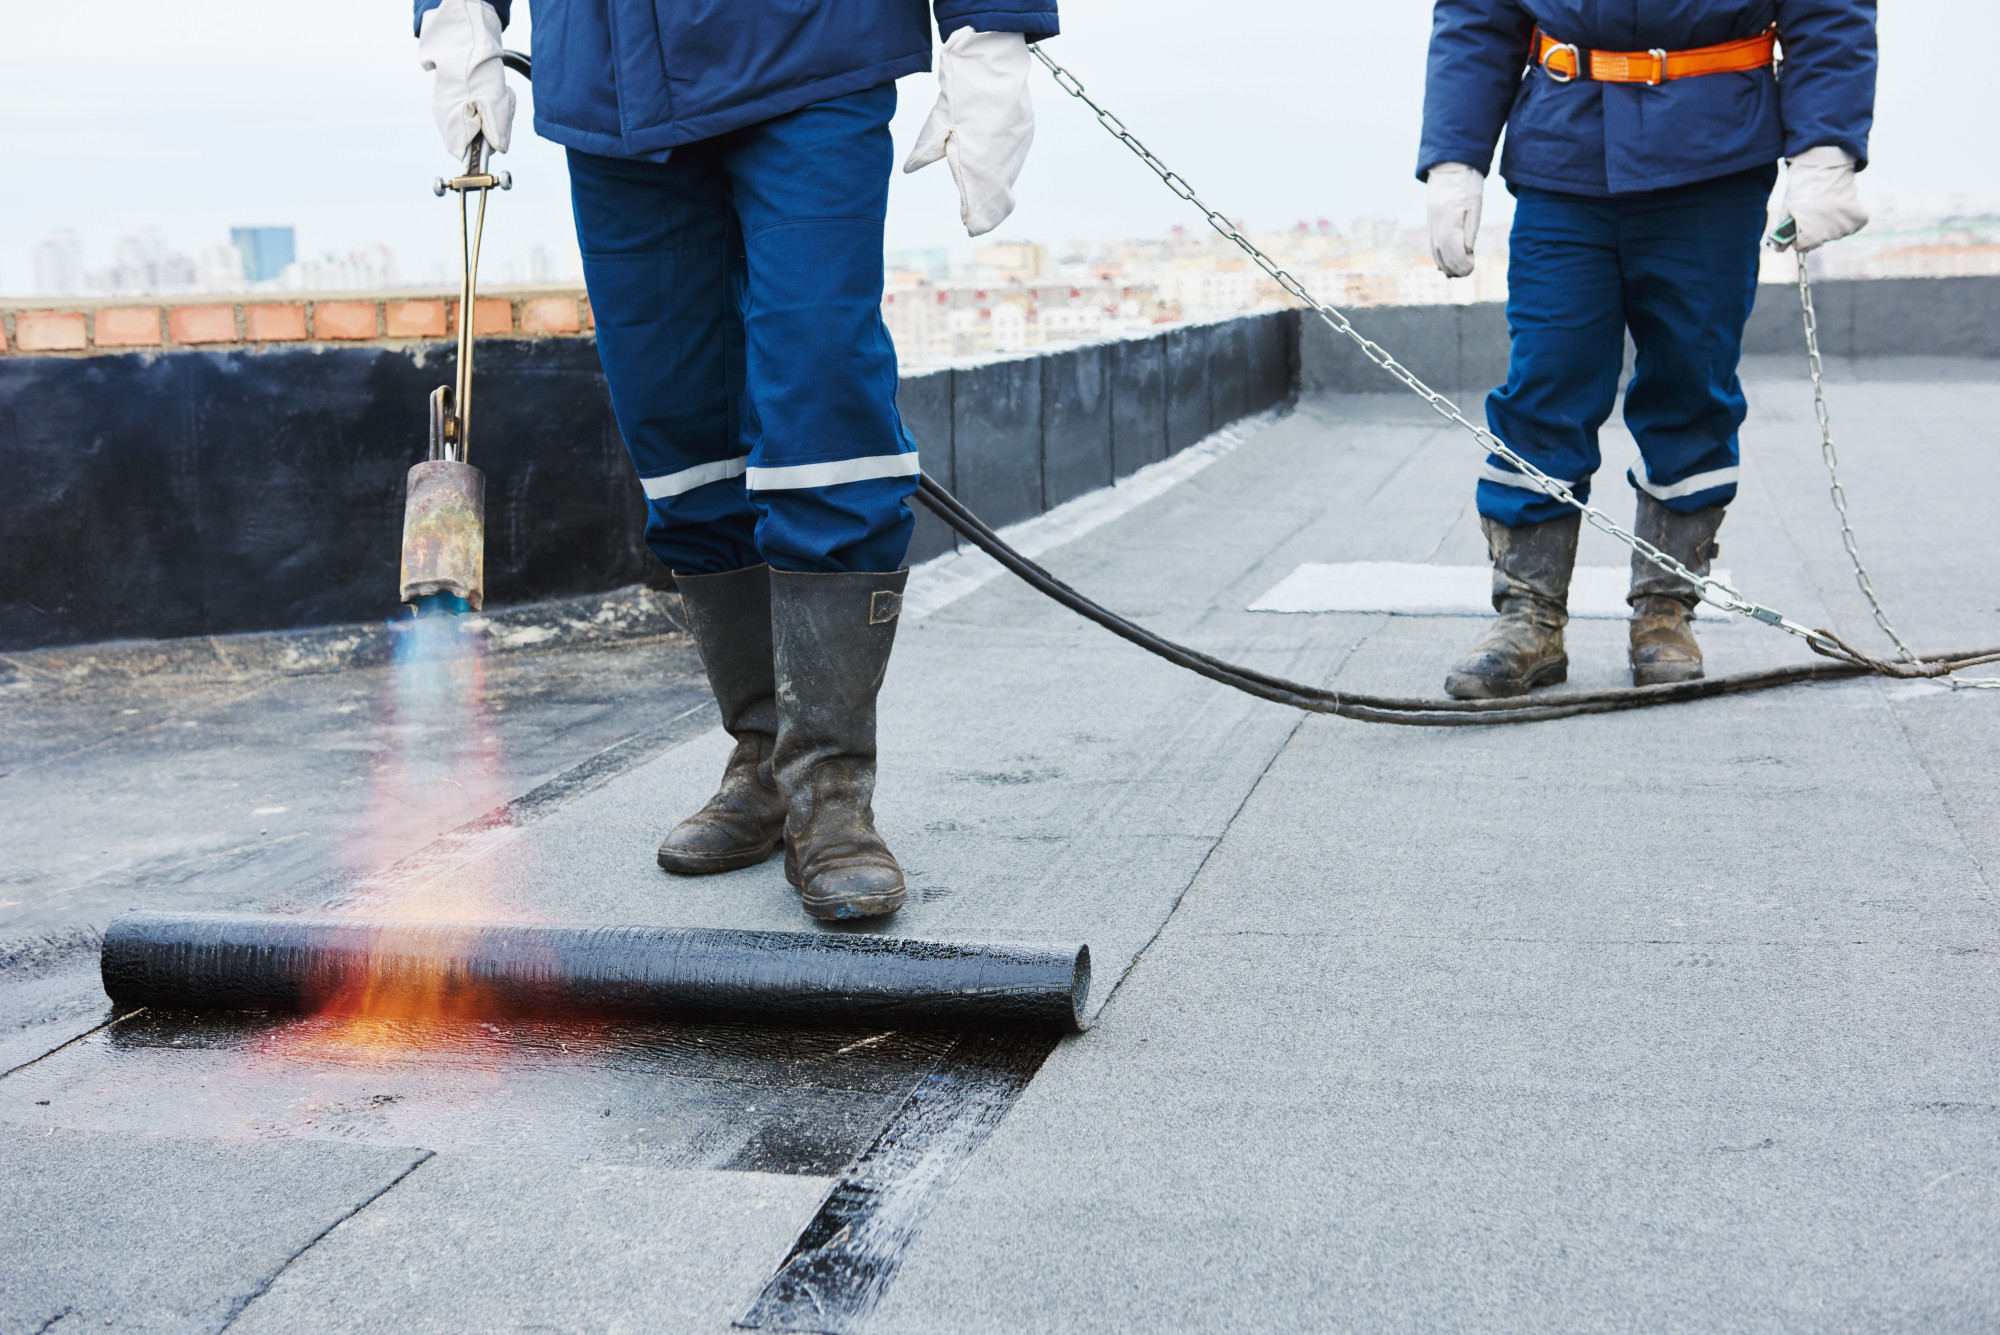 Commercial Roofing Installation: Finding the Right Company for the Job